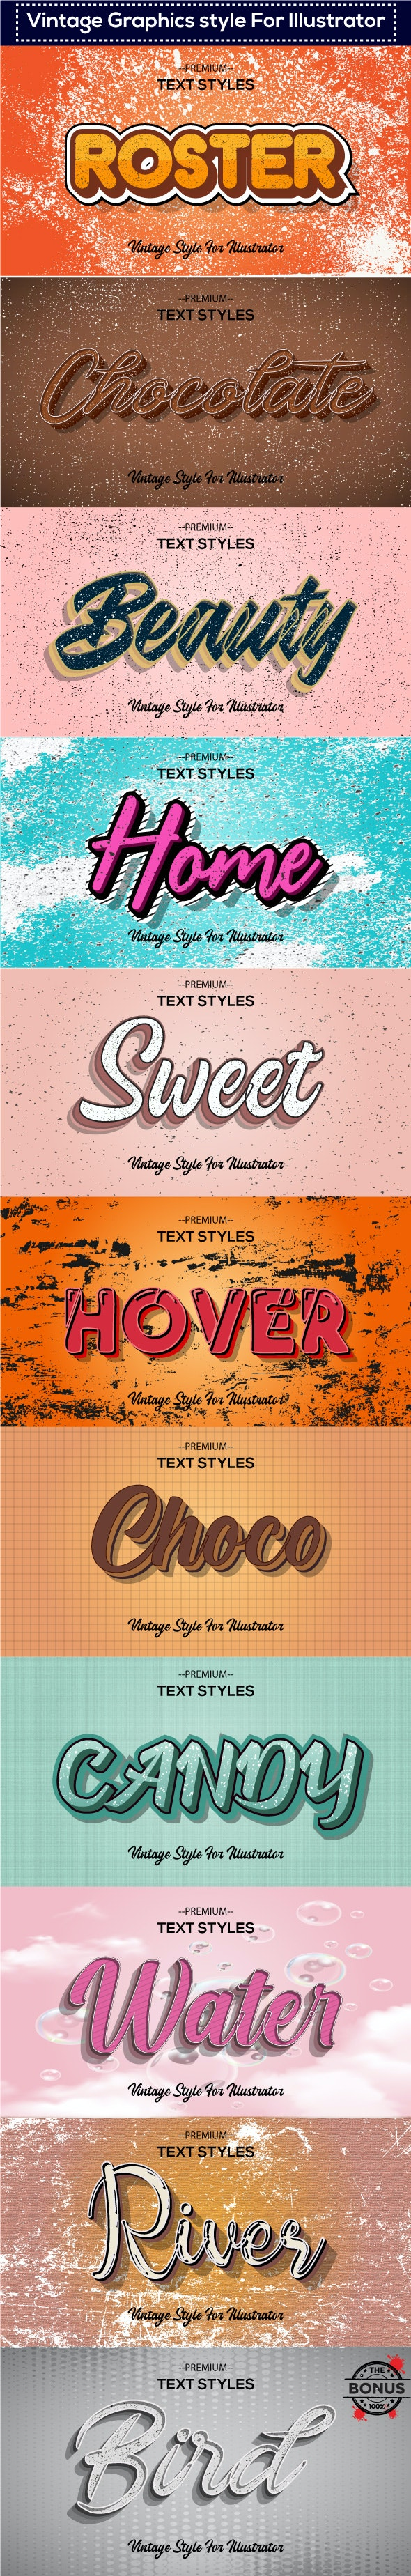 10 Different Vintage and Retro Graphic Styles for Adobe Illustrator - Styles Illustrator